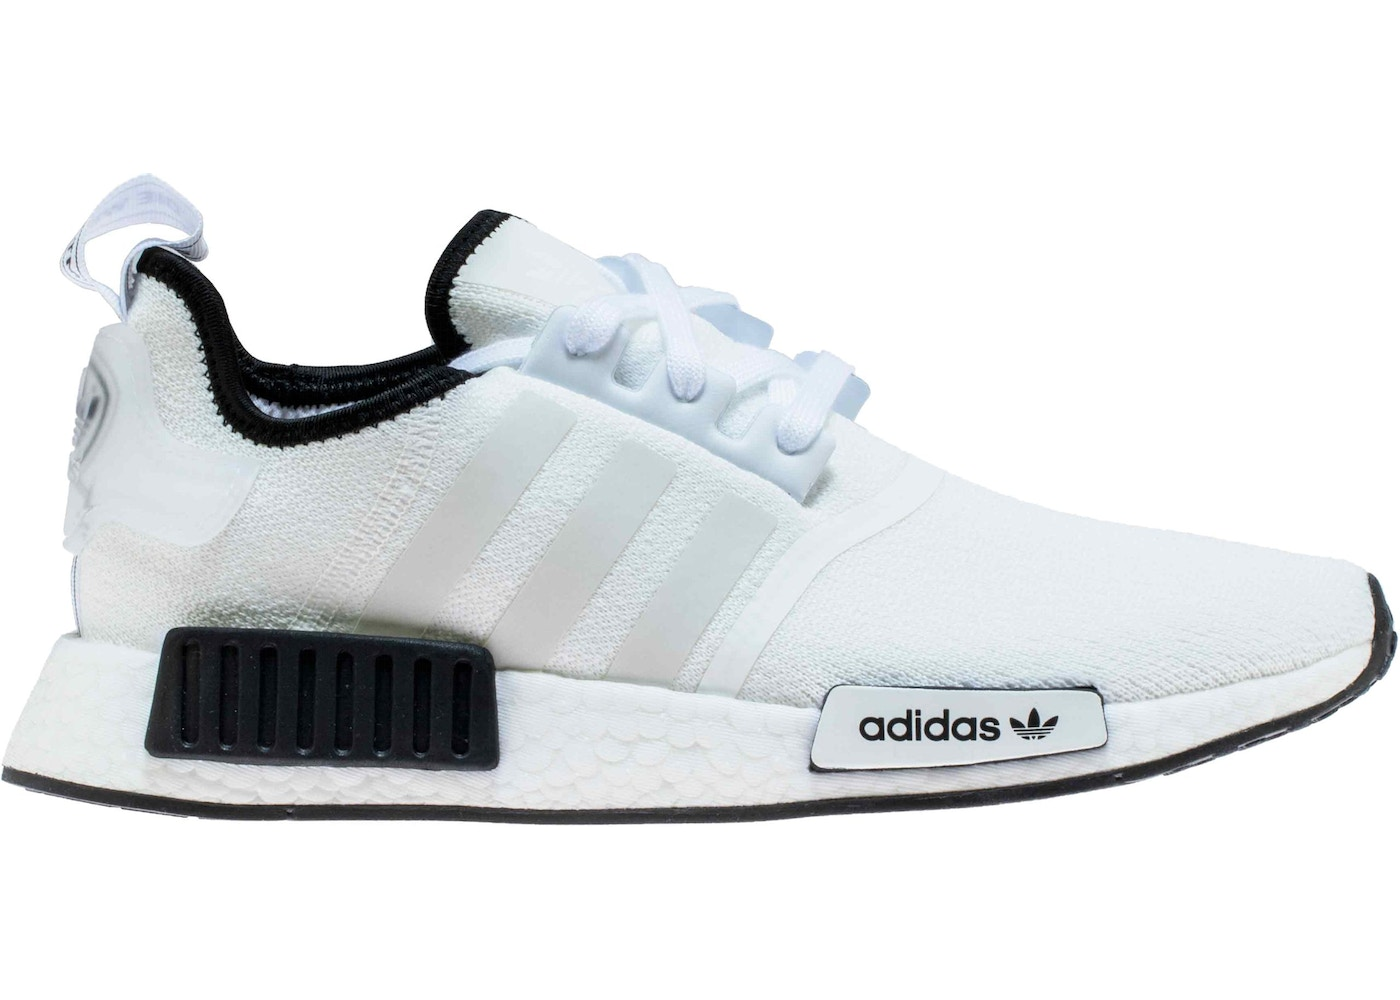 b3f431ea4342 adidas NMD Shoes - Release Date